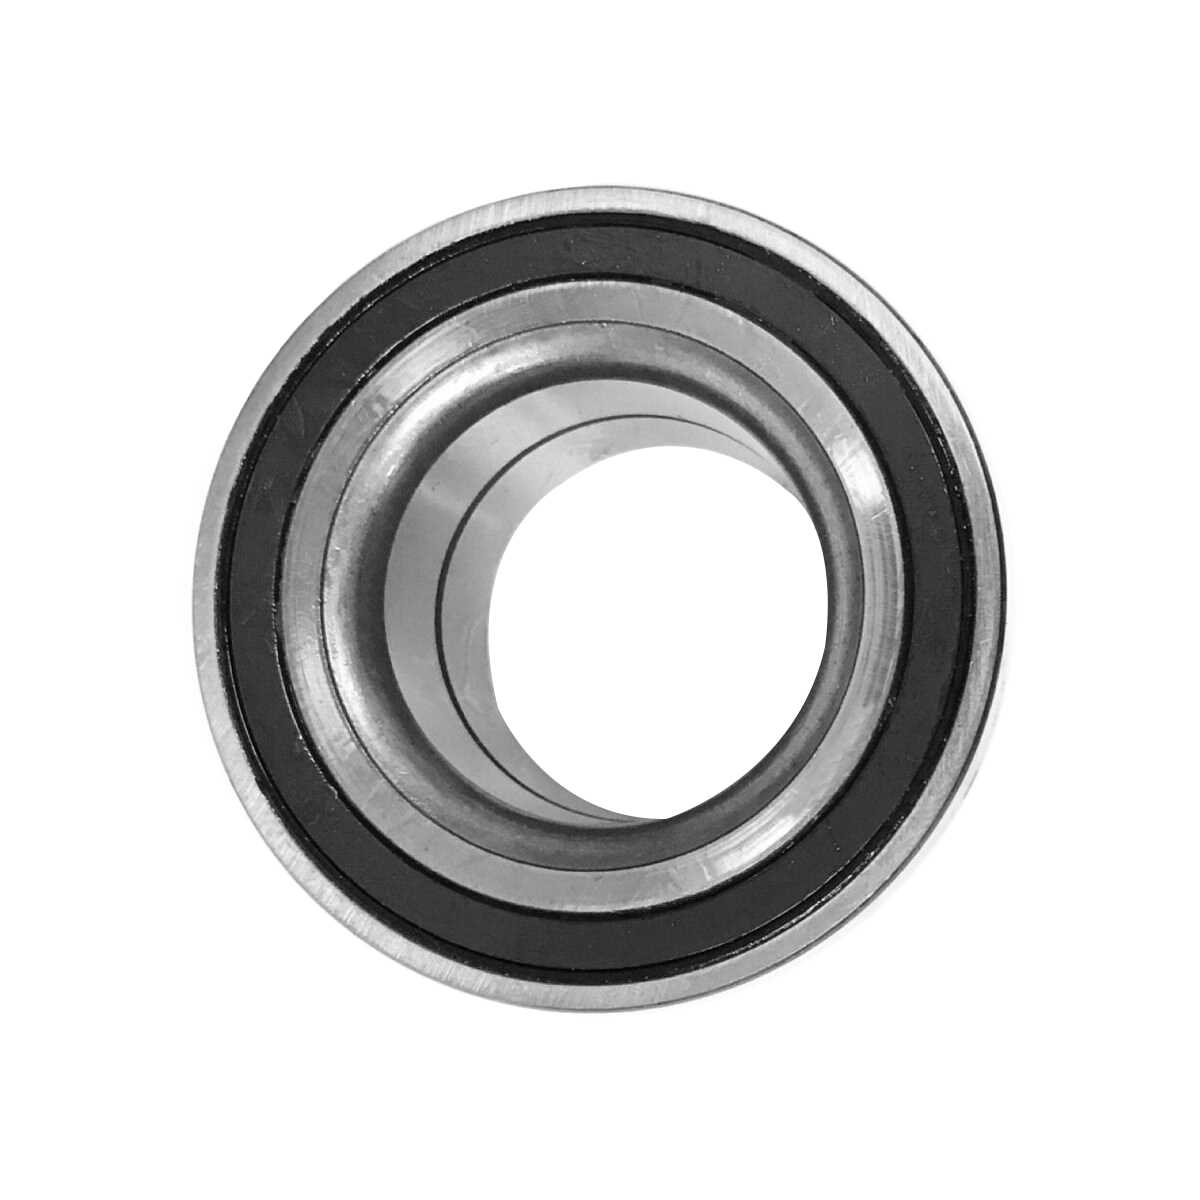 AutoShack WB610065PR Front Wheel Bearing Pair 2 Pieces Fits Driver and Passenger Side